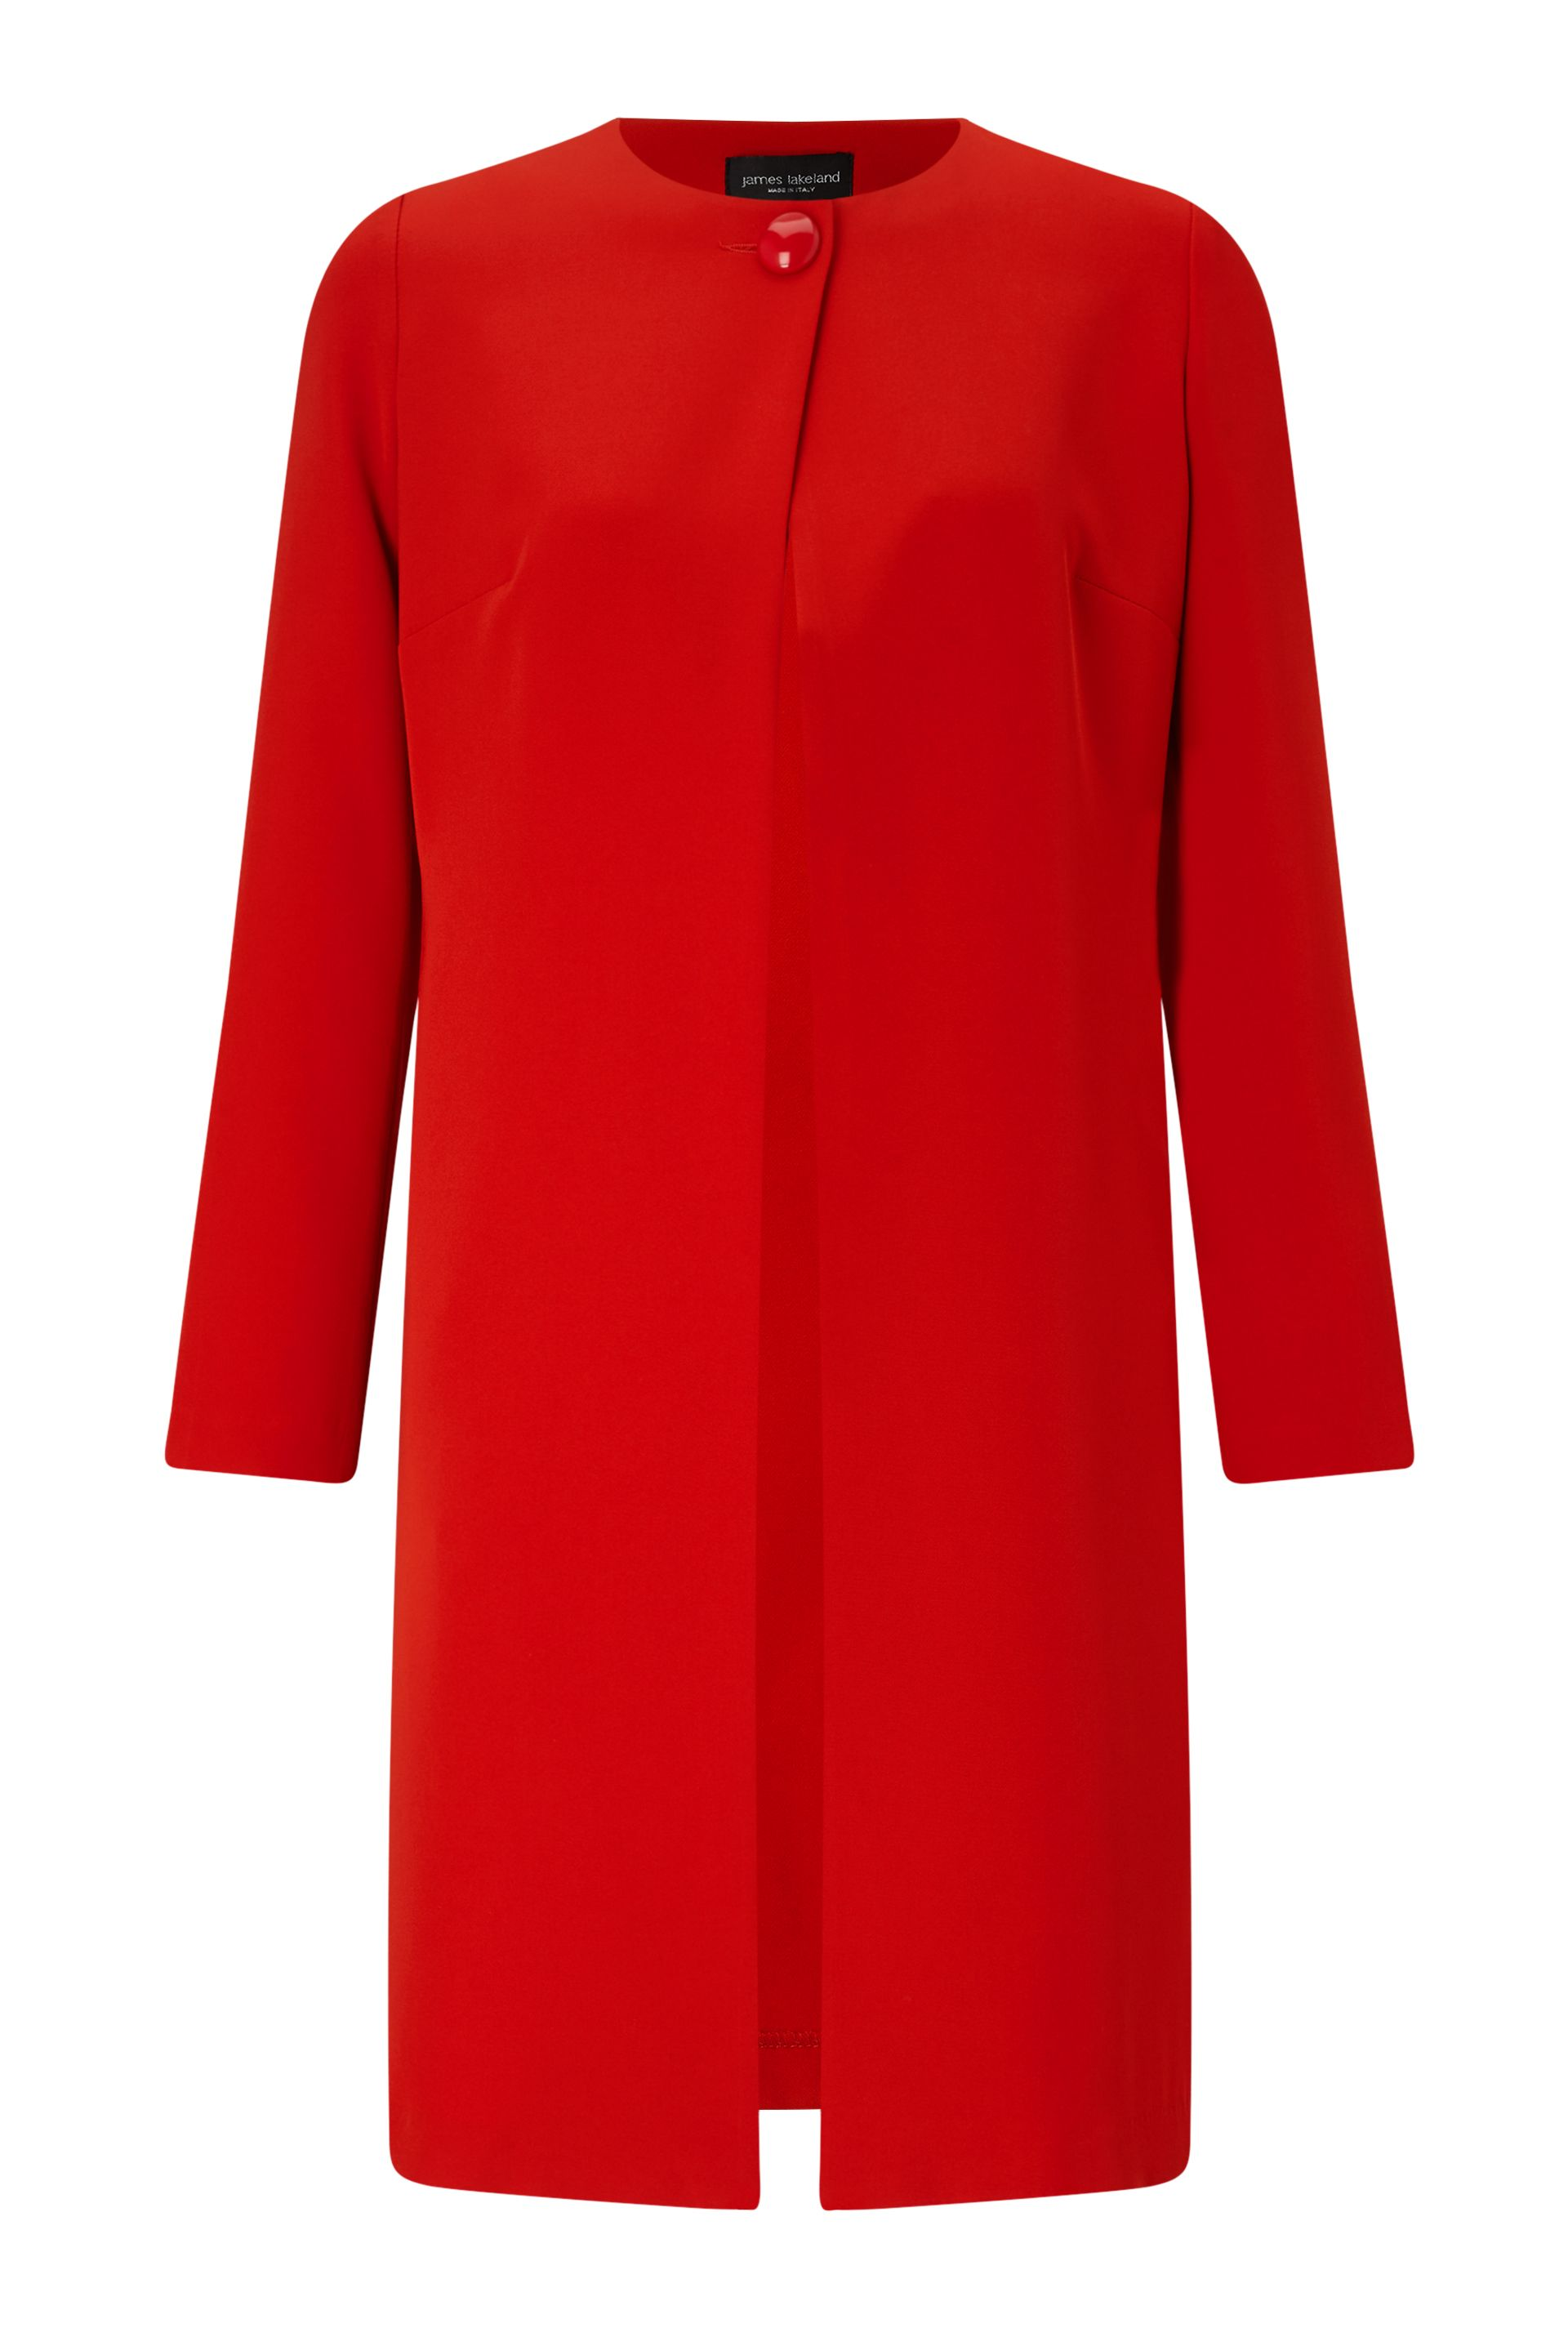 James Lakeland One Button Crepe Coat, Red